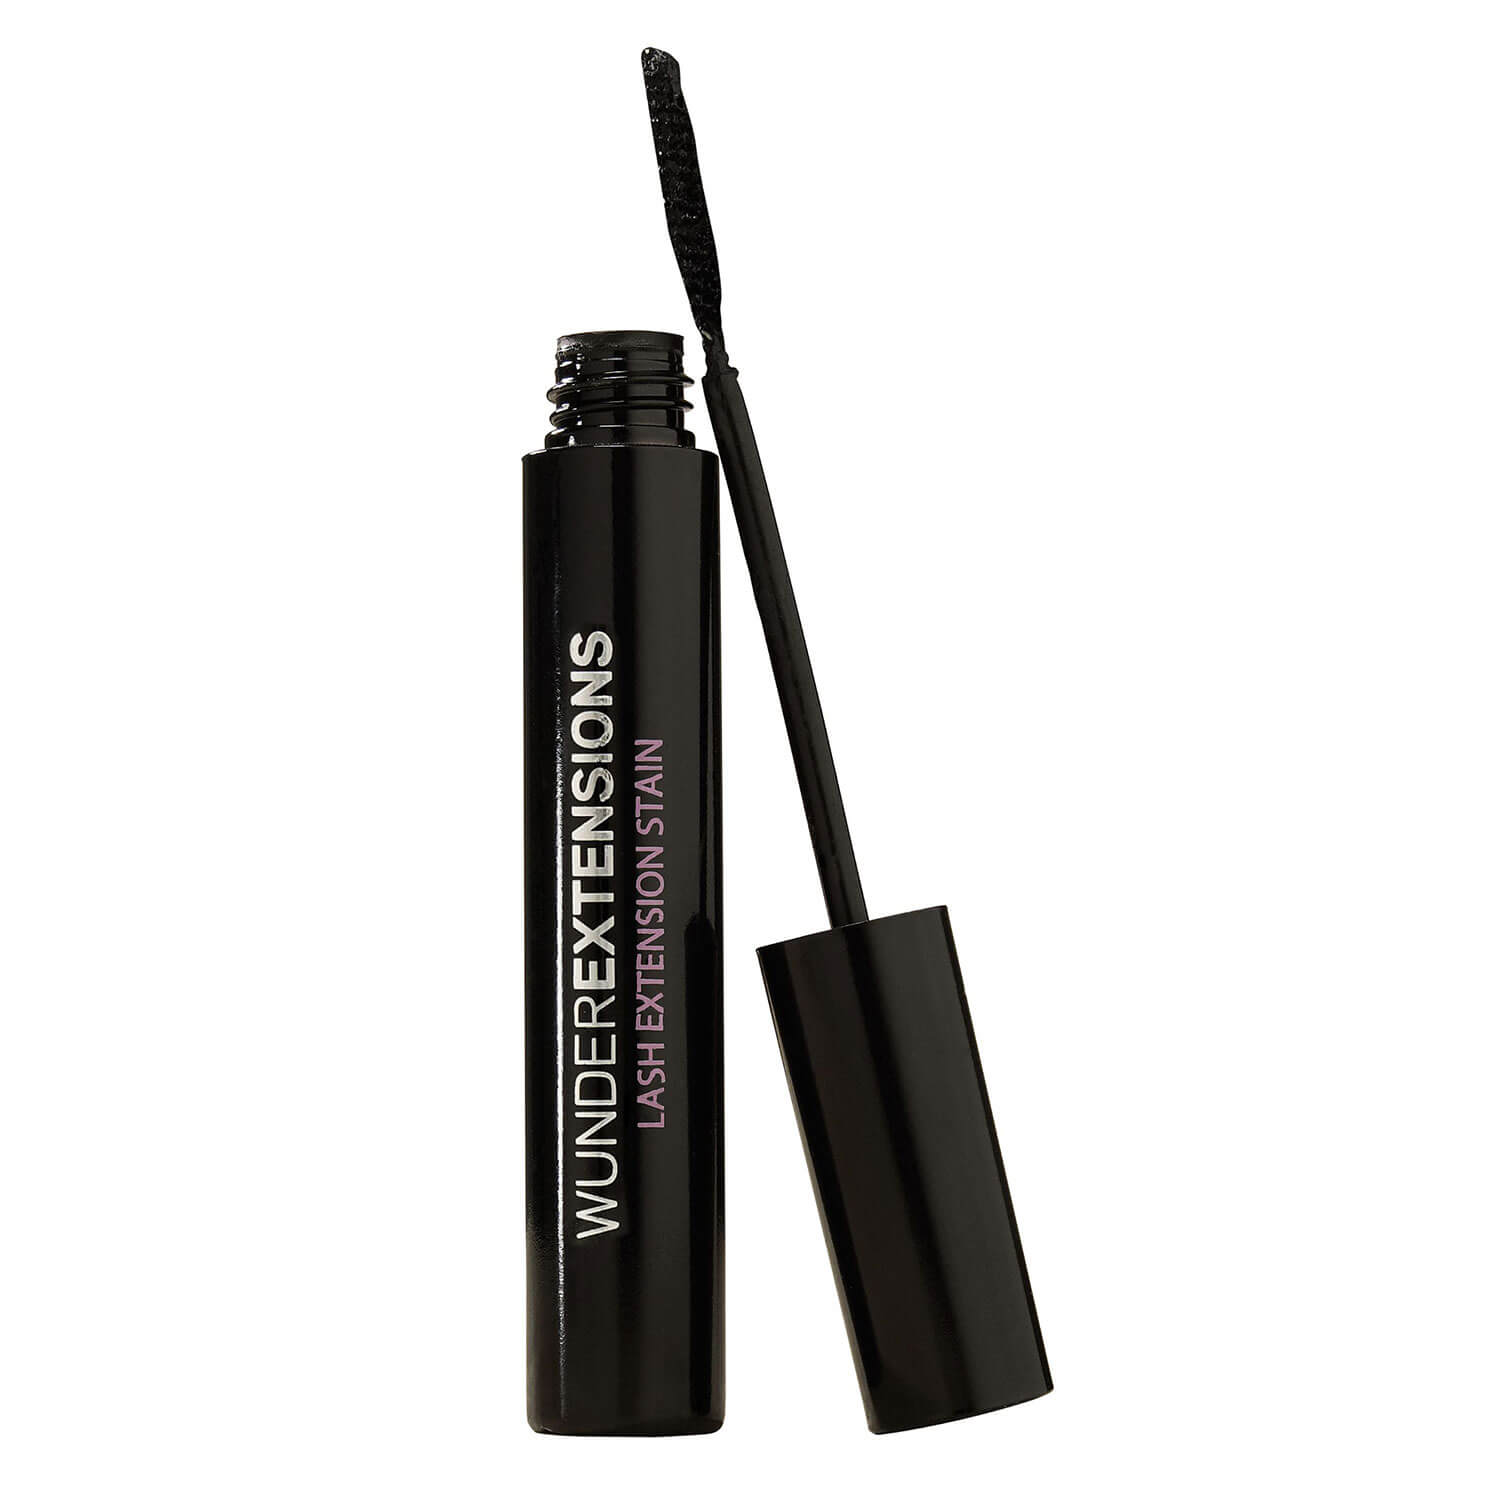 WUNDEREXTENSIONS - Lash Extension Stain Mascara Black - 8g